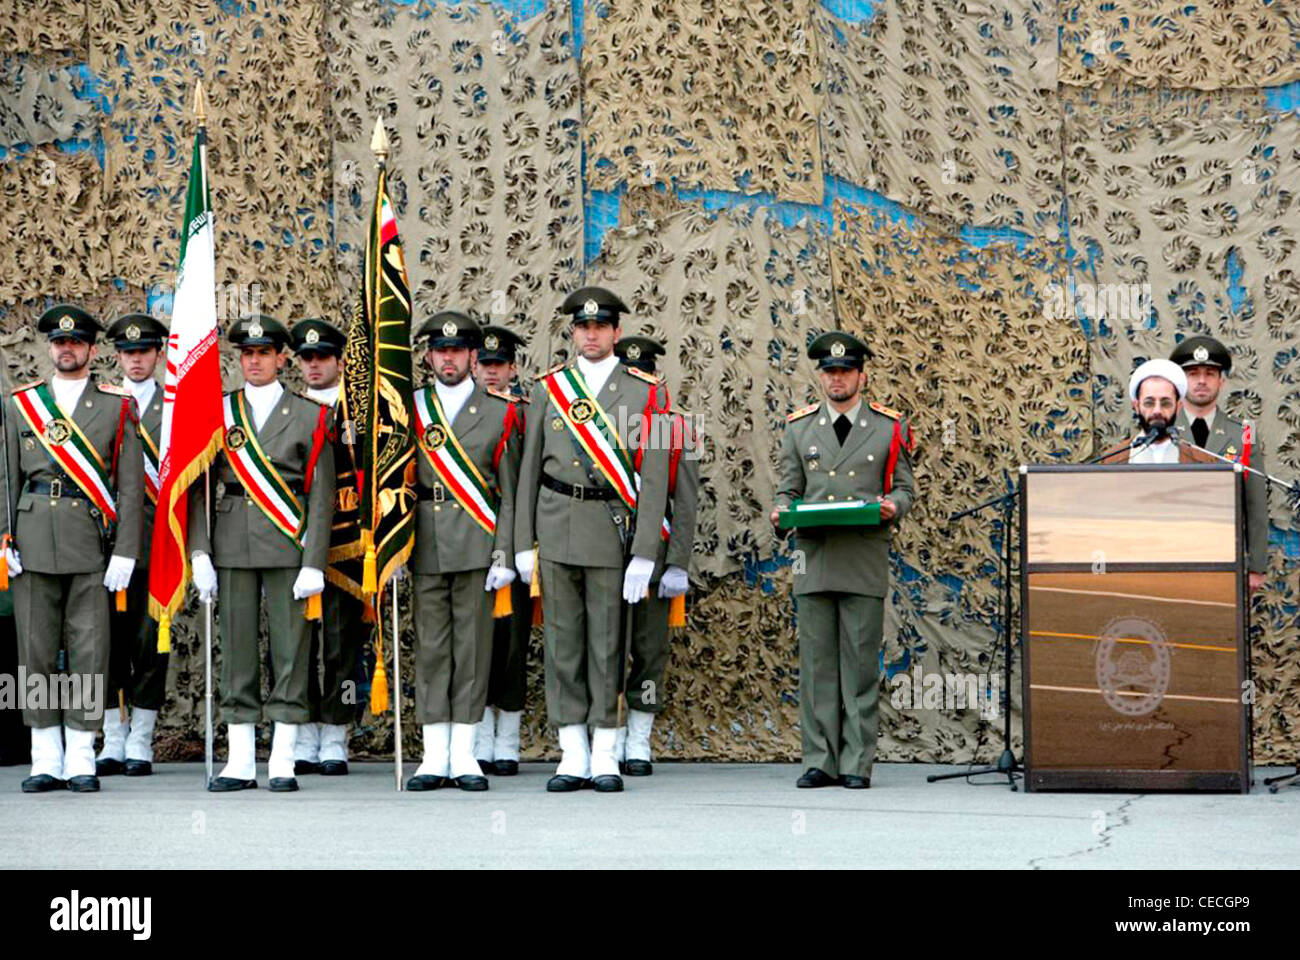 Officers and soldiers of the Iranian Army during a parade in Tehran. Stock Photo